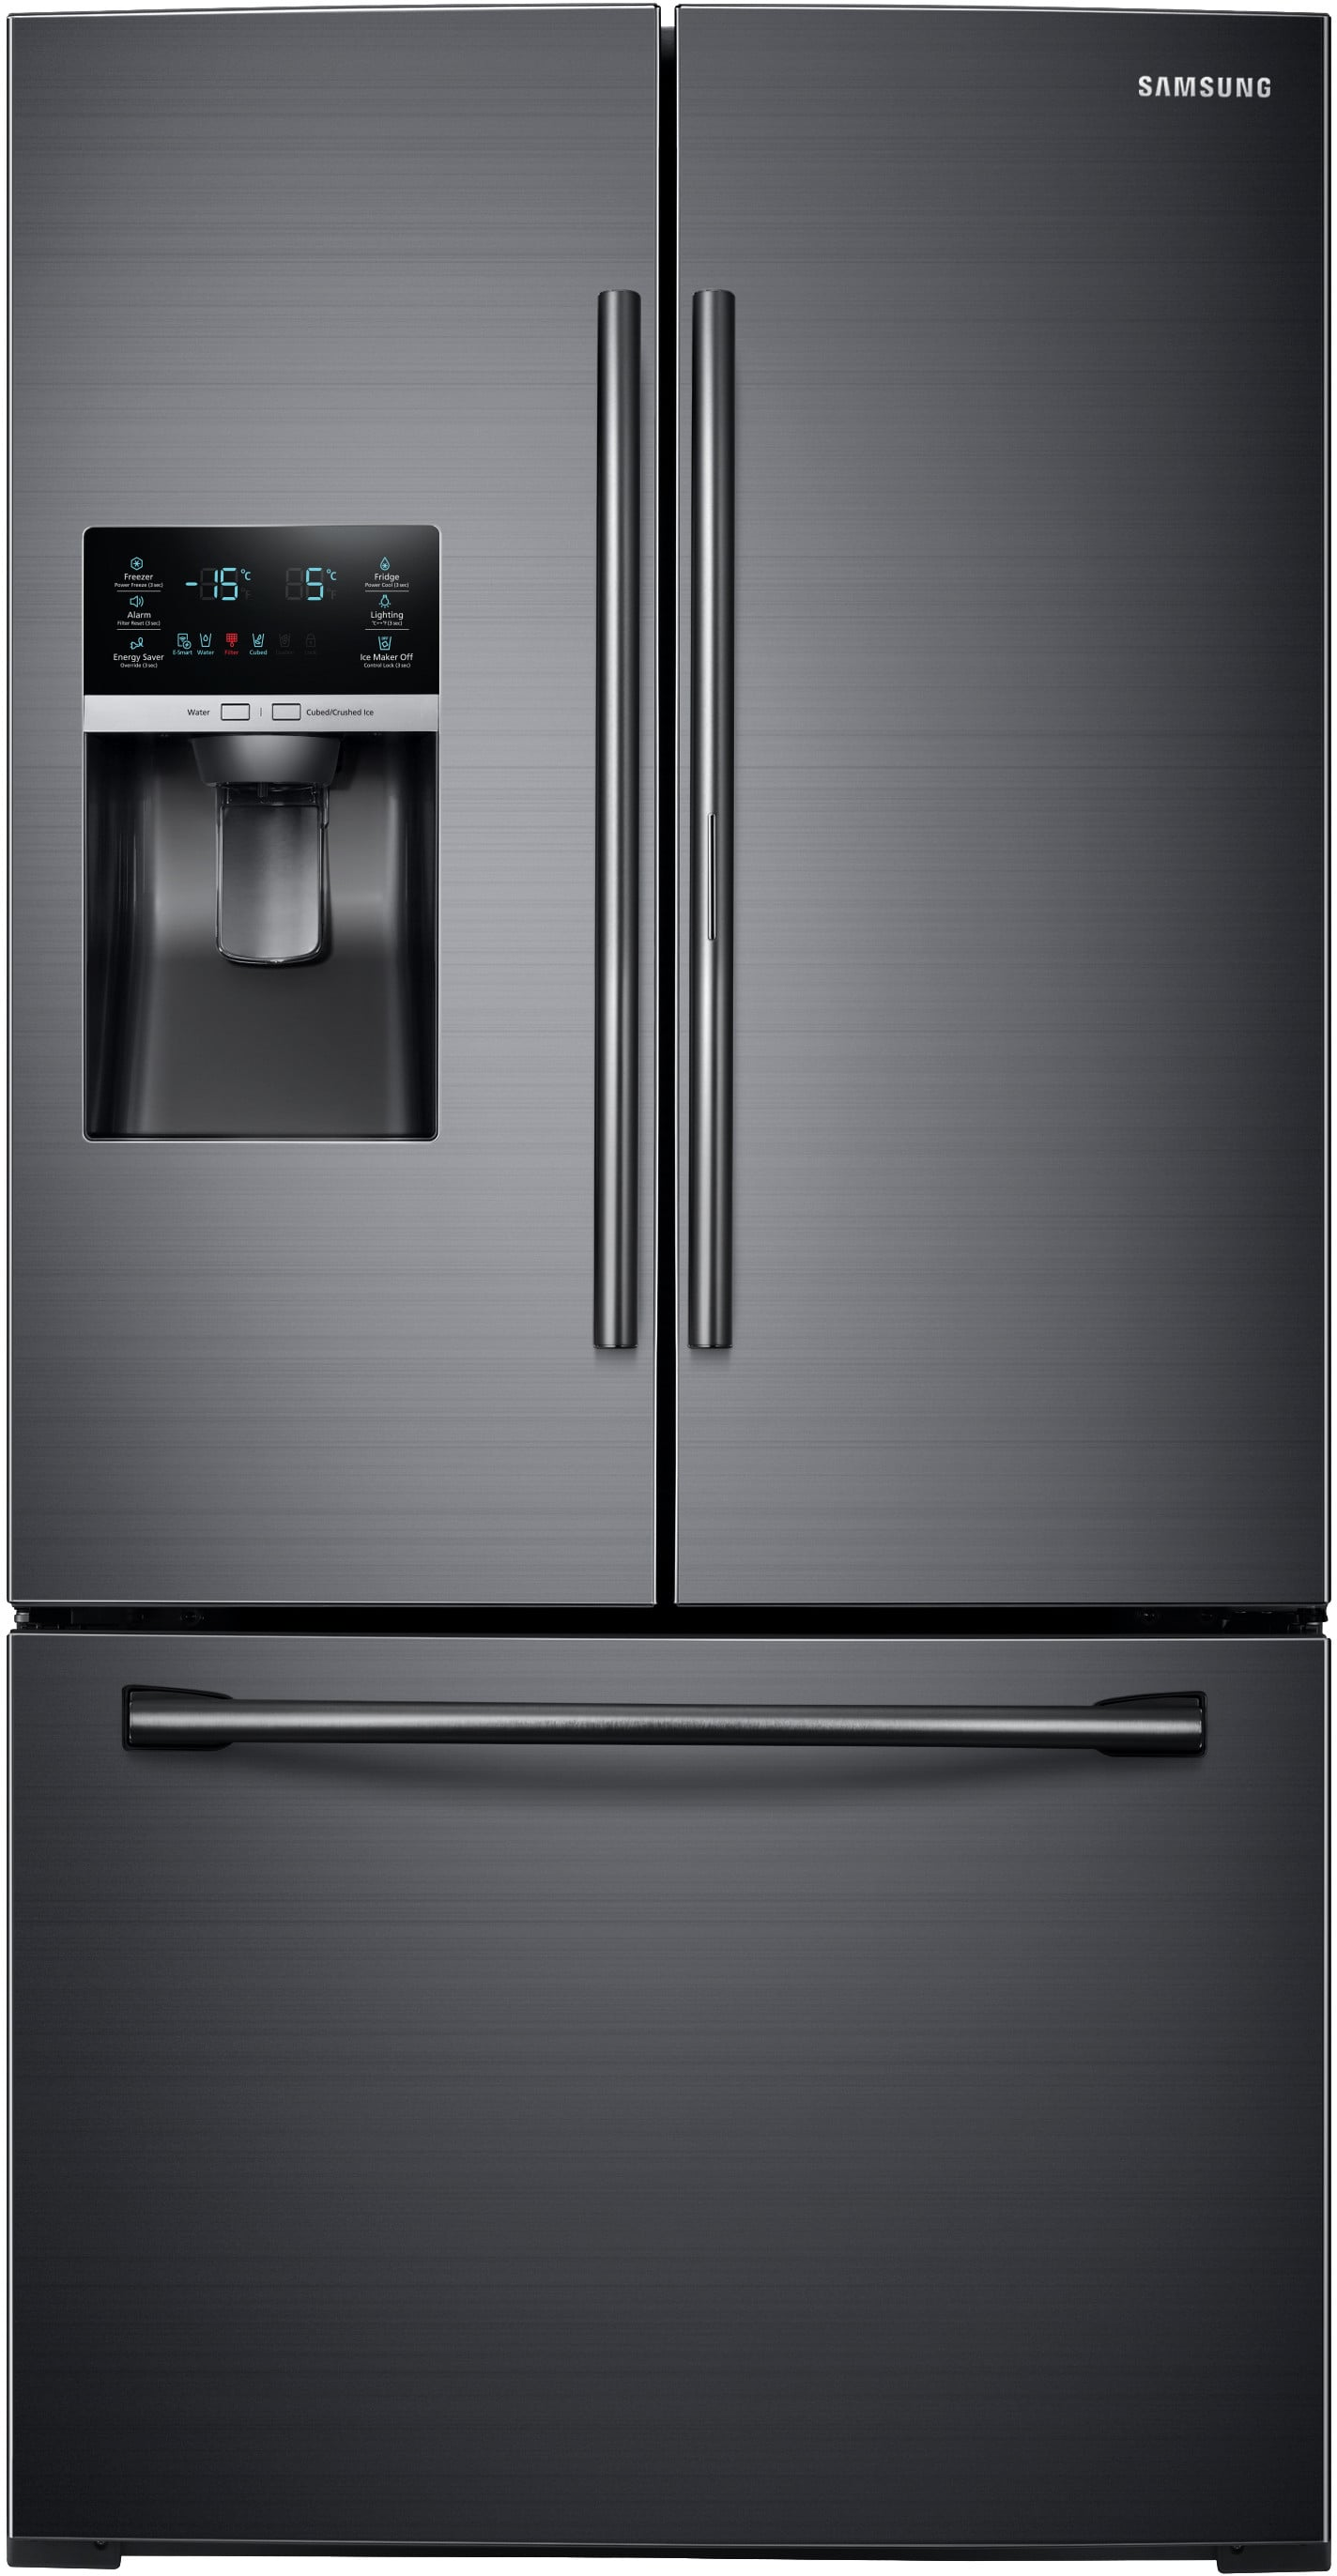 Samsung Rf28Hdedbsg 36 Inch French Door Refrigerator With Showcase Door,